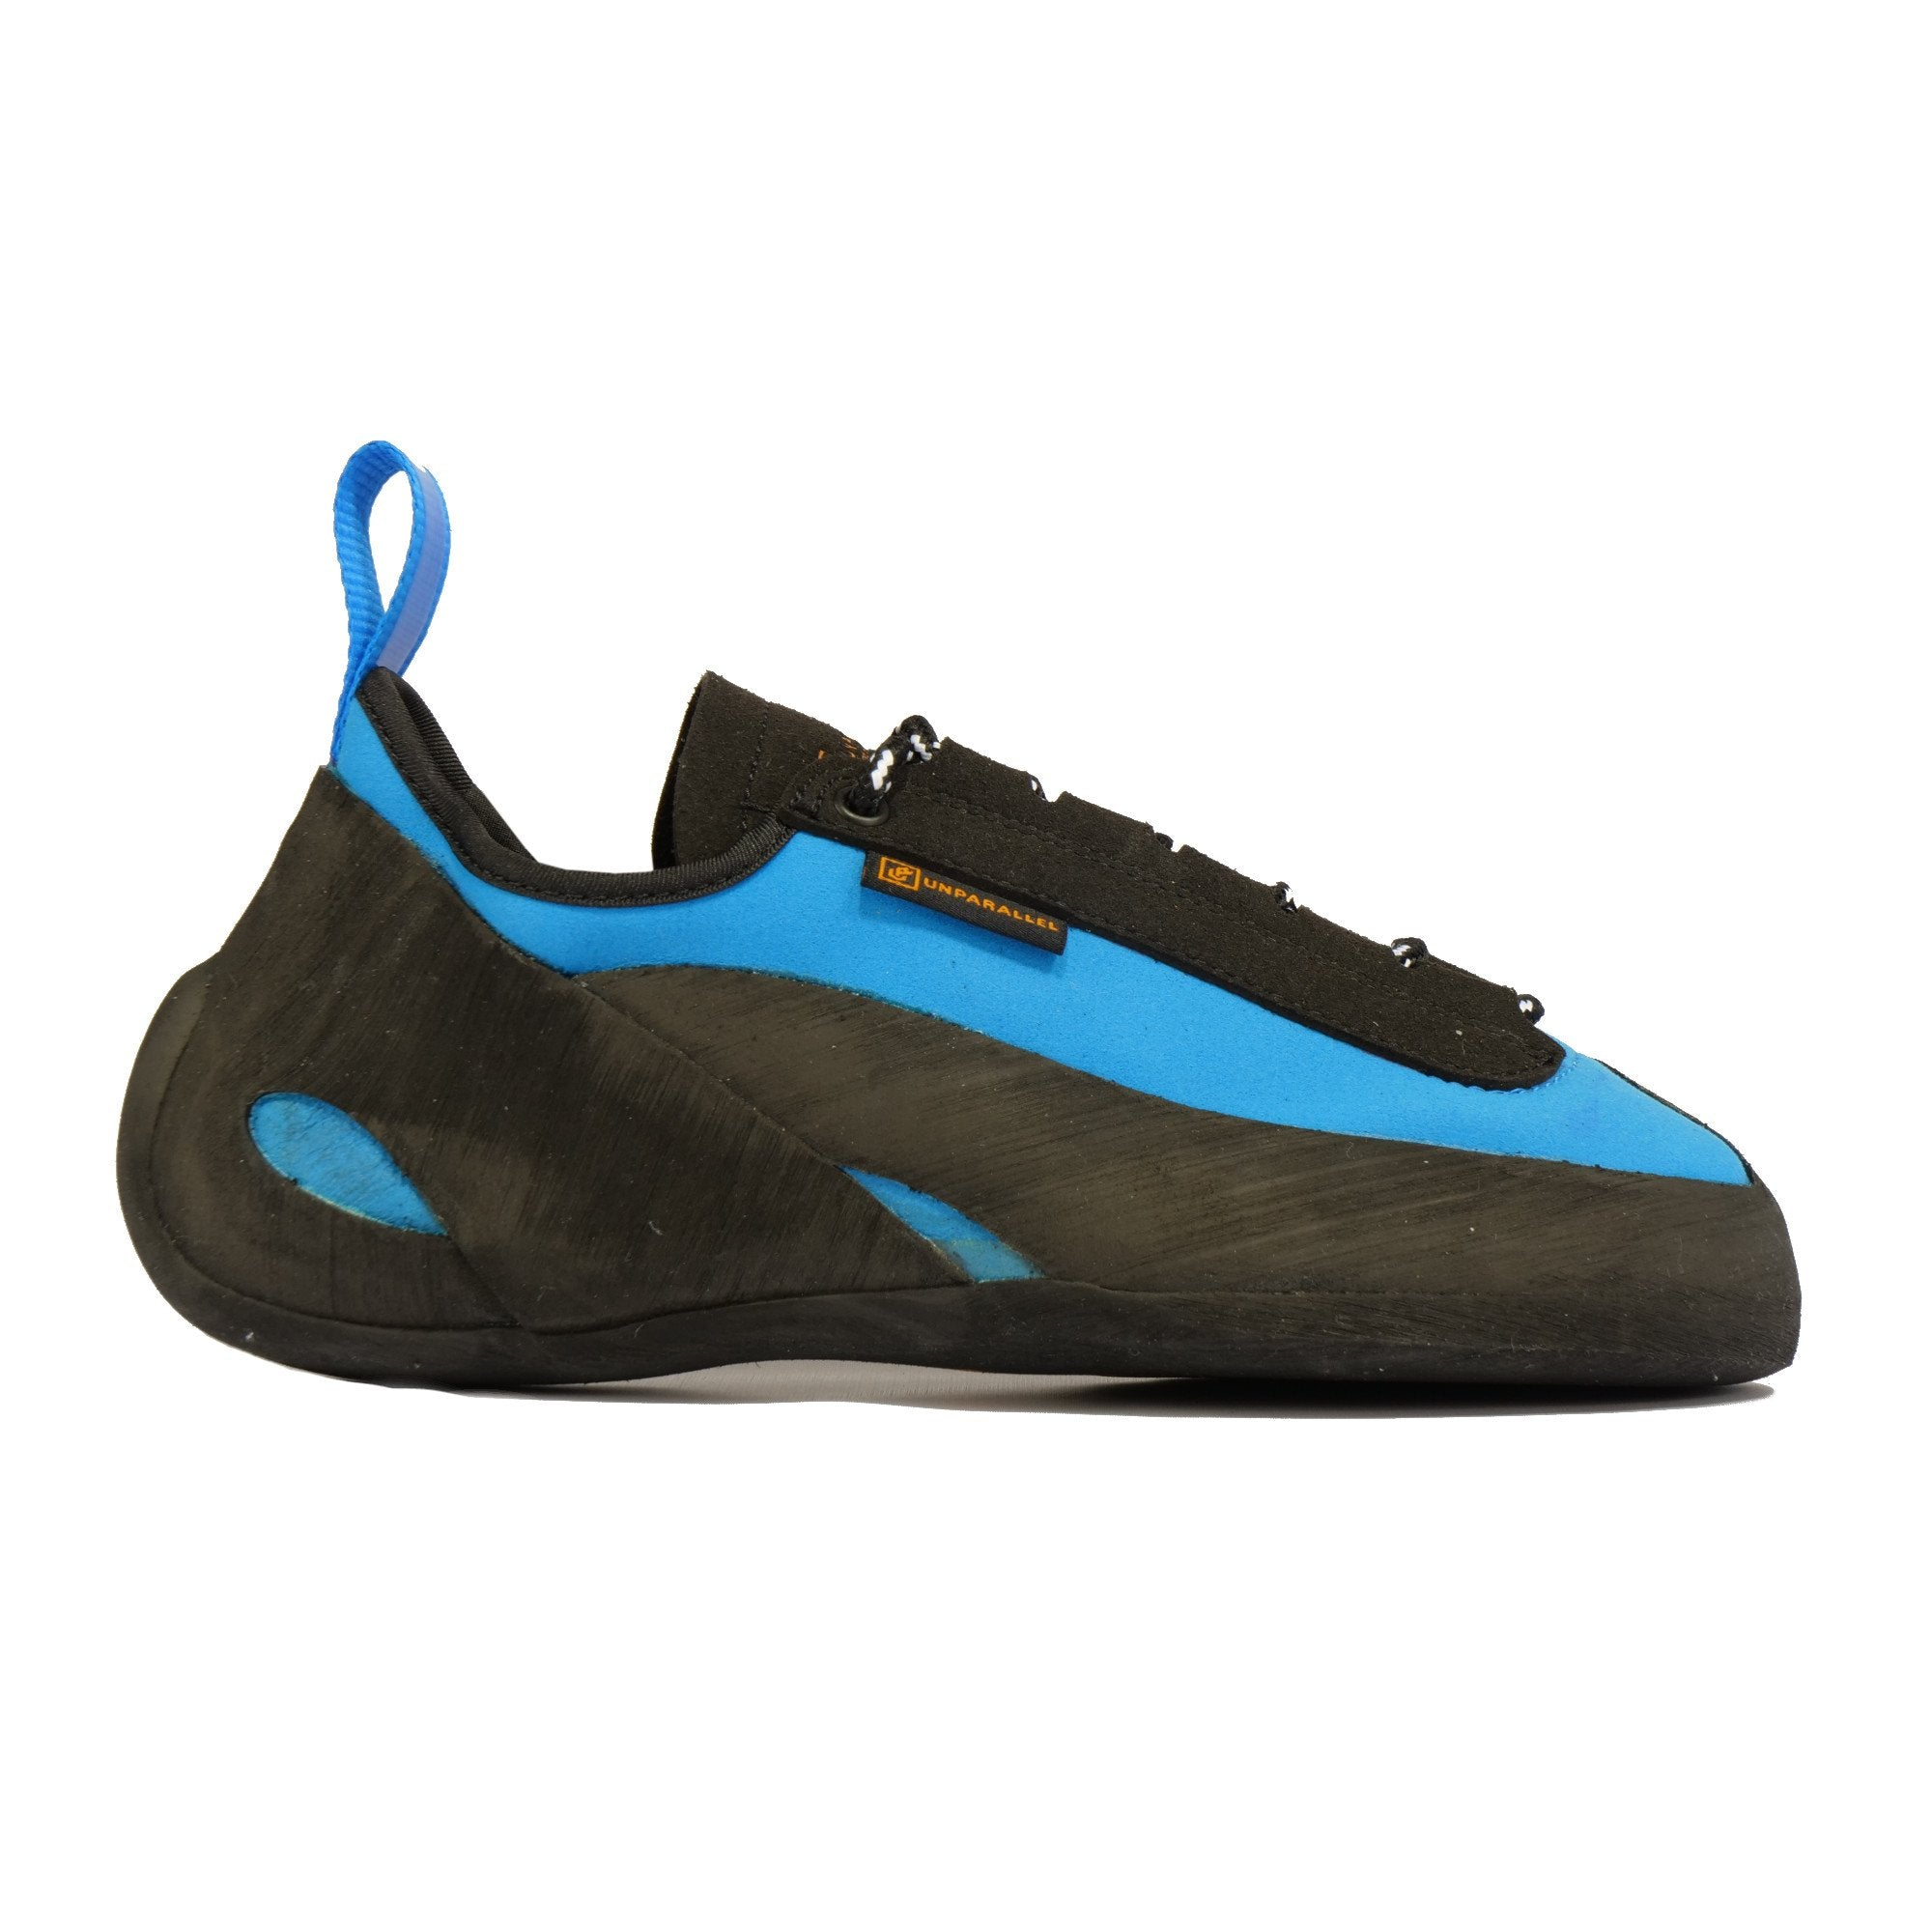 Unparallel Up Lace climbing shoe in Blue and black with rear blue pull tab